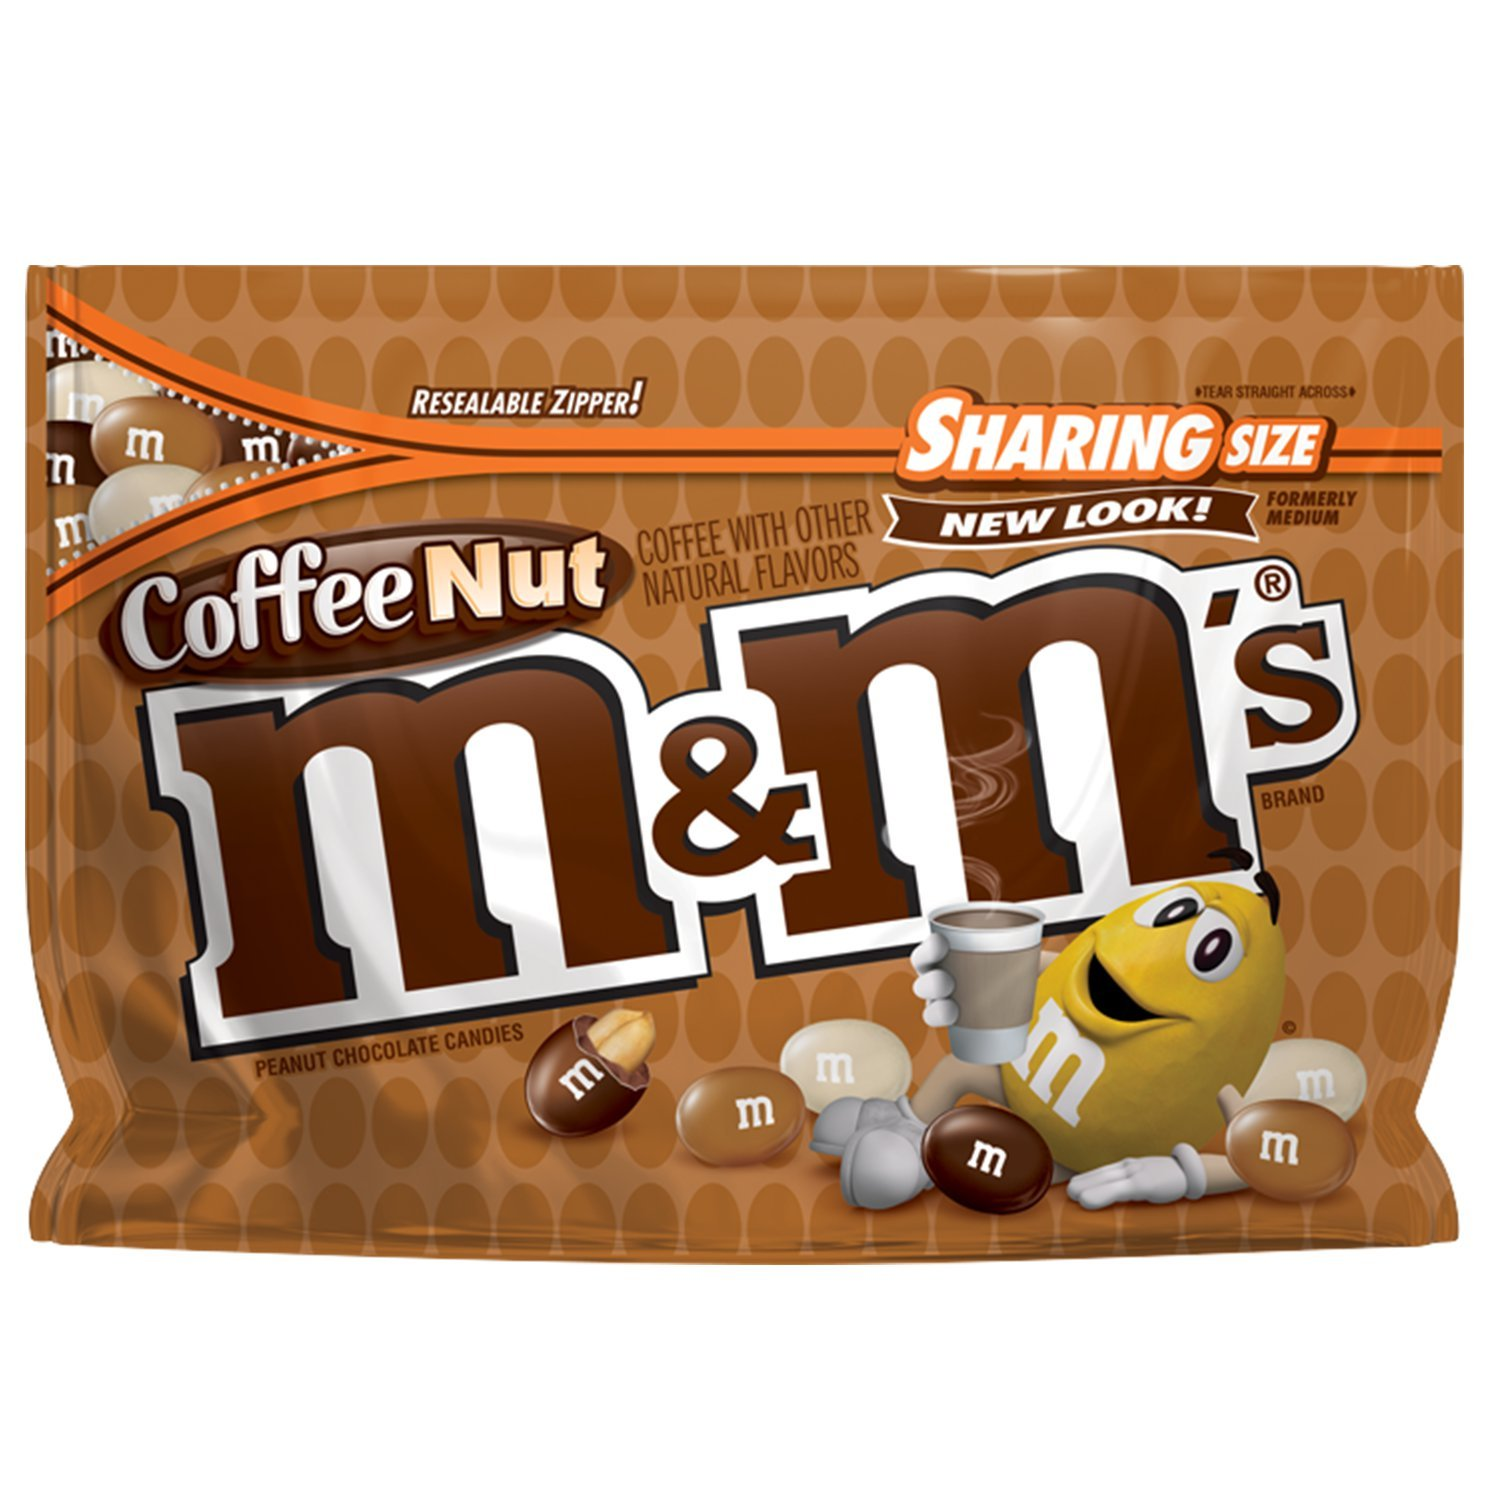 M&M'S Coffee Nut Peanut Chocolate Candy Sharing Size Bags 9.6 Ounce (Pack of 8)